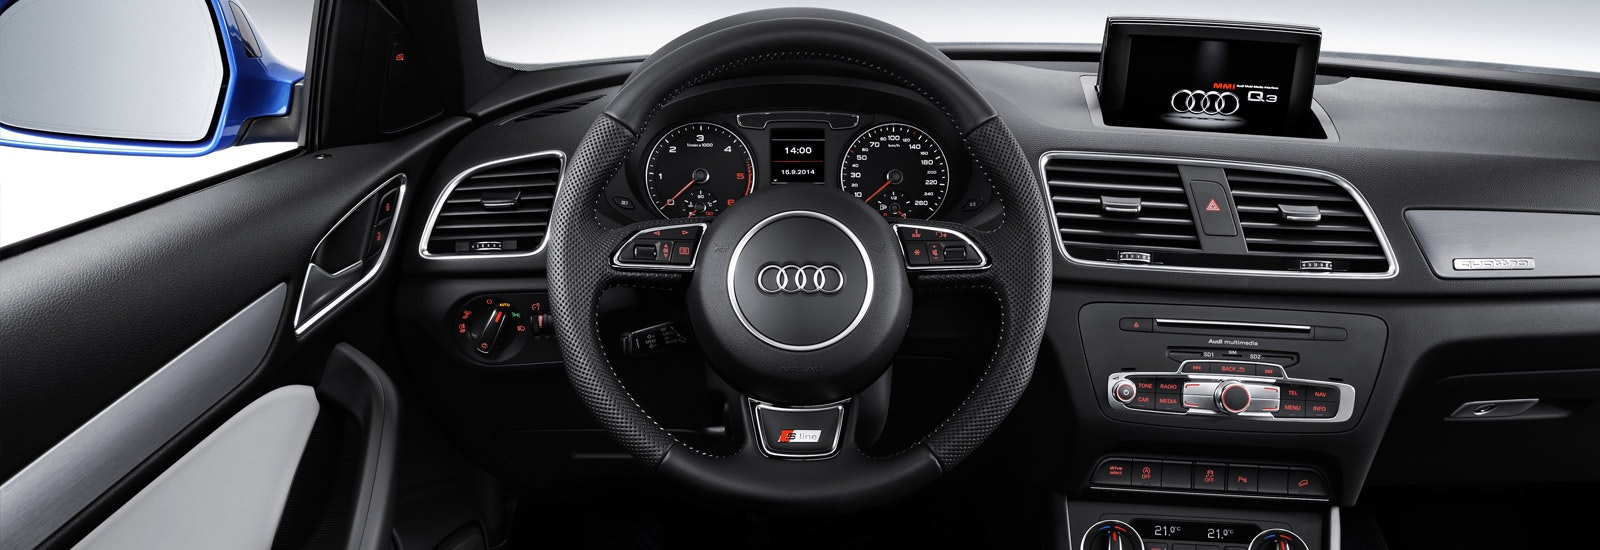 2019 Audi Q4 Suv Coupe Price Specs And Release Date Carwow